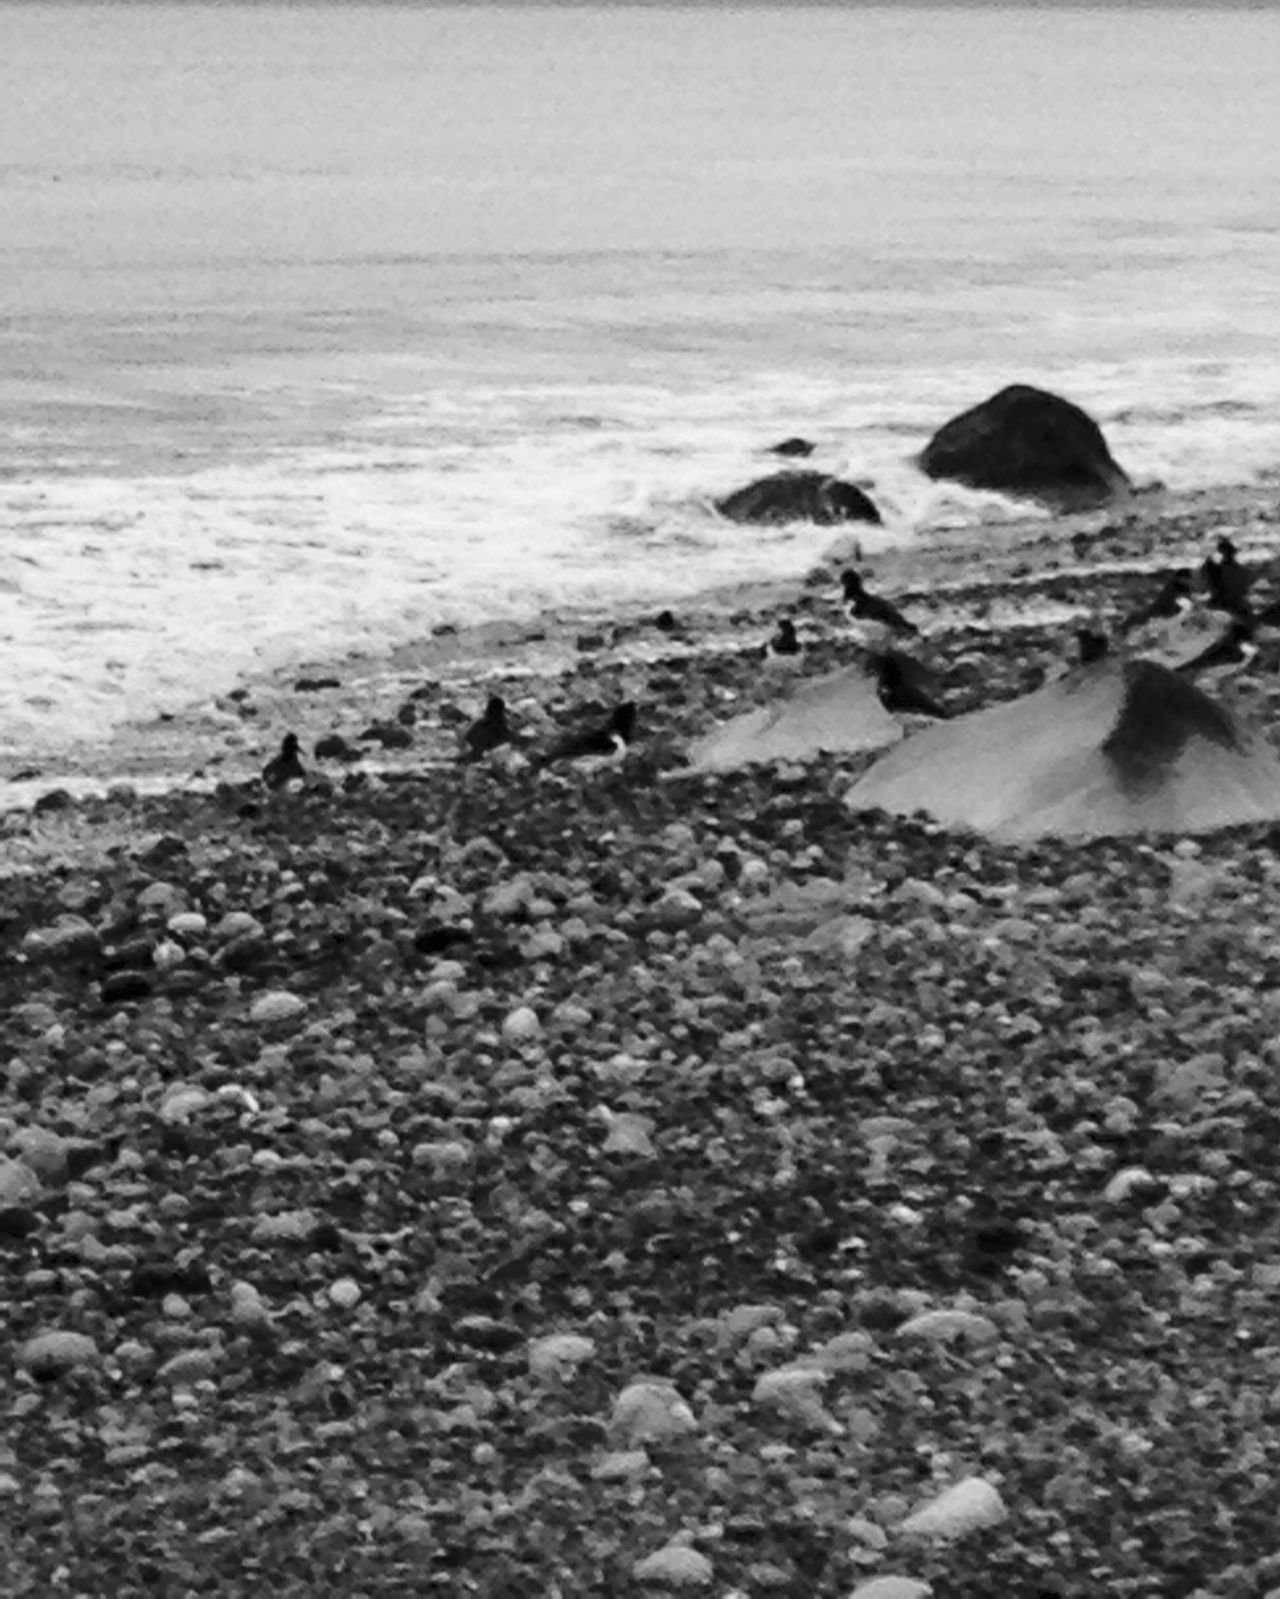 Shades Of Grey Being A Beach Bum Blackandwhite Black And White Black & White Blackandwhite Photography Black And White Photography Black&white Blackandwhitephotography Black And White Collection  Black And White Seaview Black And White Sea View Black And White Beach Scene Black And White Sea Collection Black And White Collection! Black And White Pebbles Black And White Nature Black And White Landscape Beach Seascape Splash Splashing Water Tide Tide Coming In Water_collection